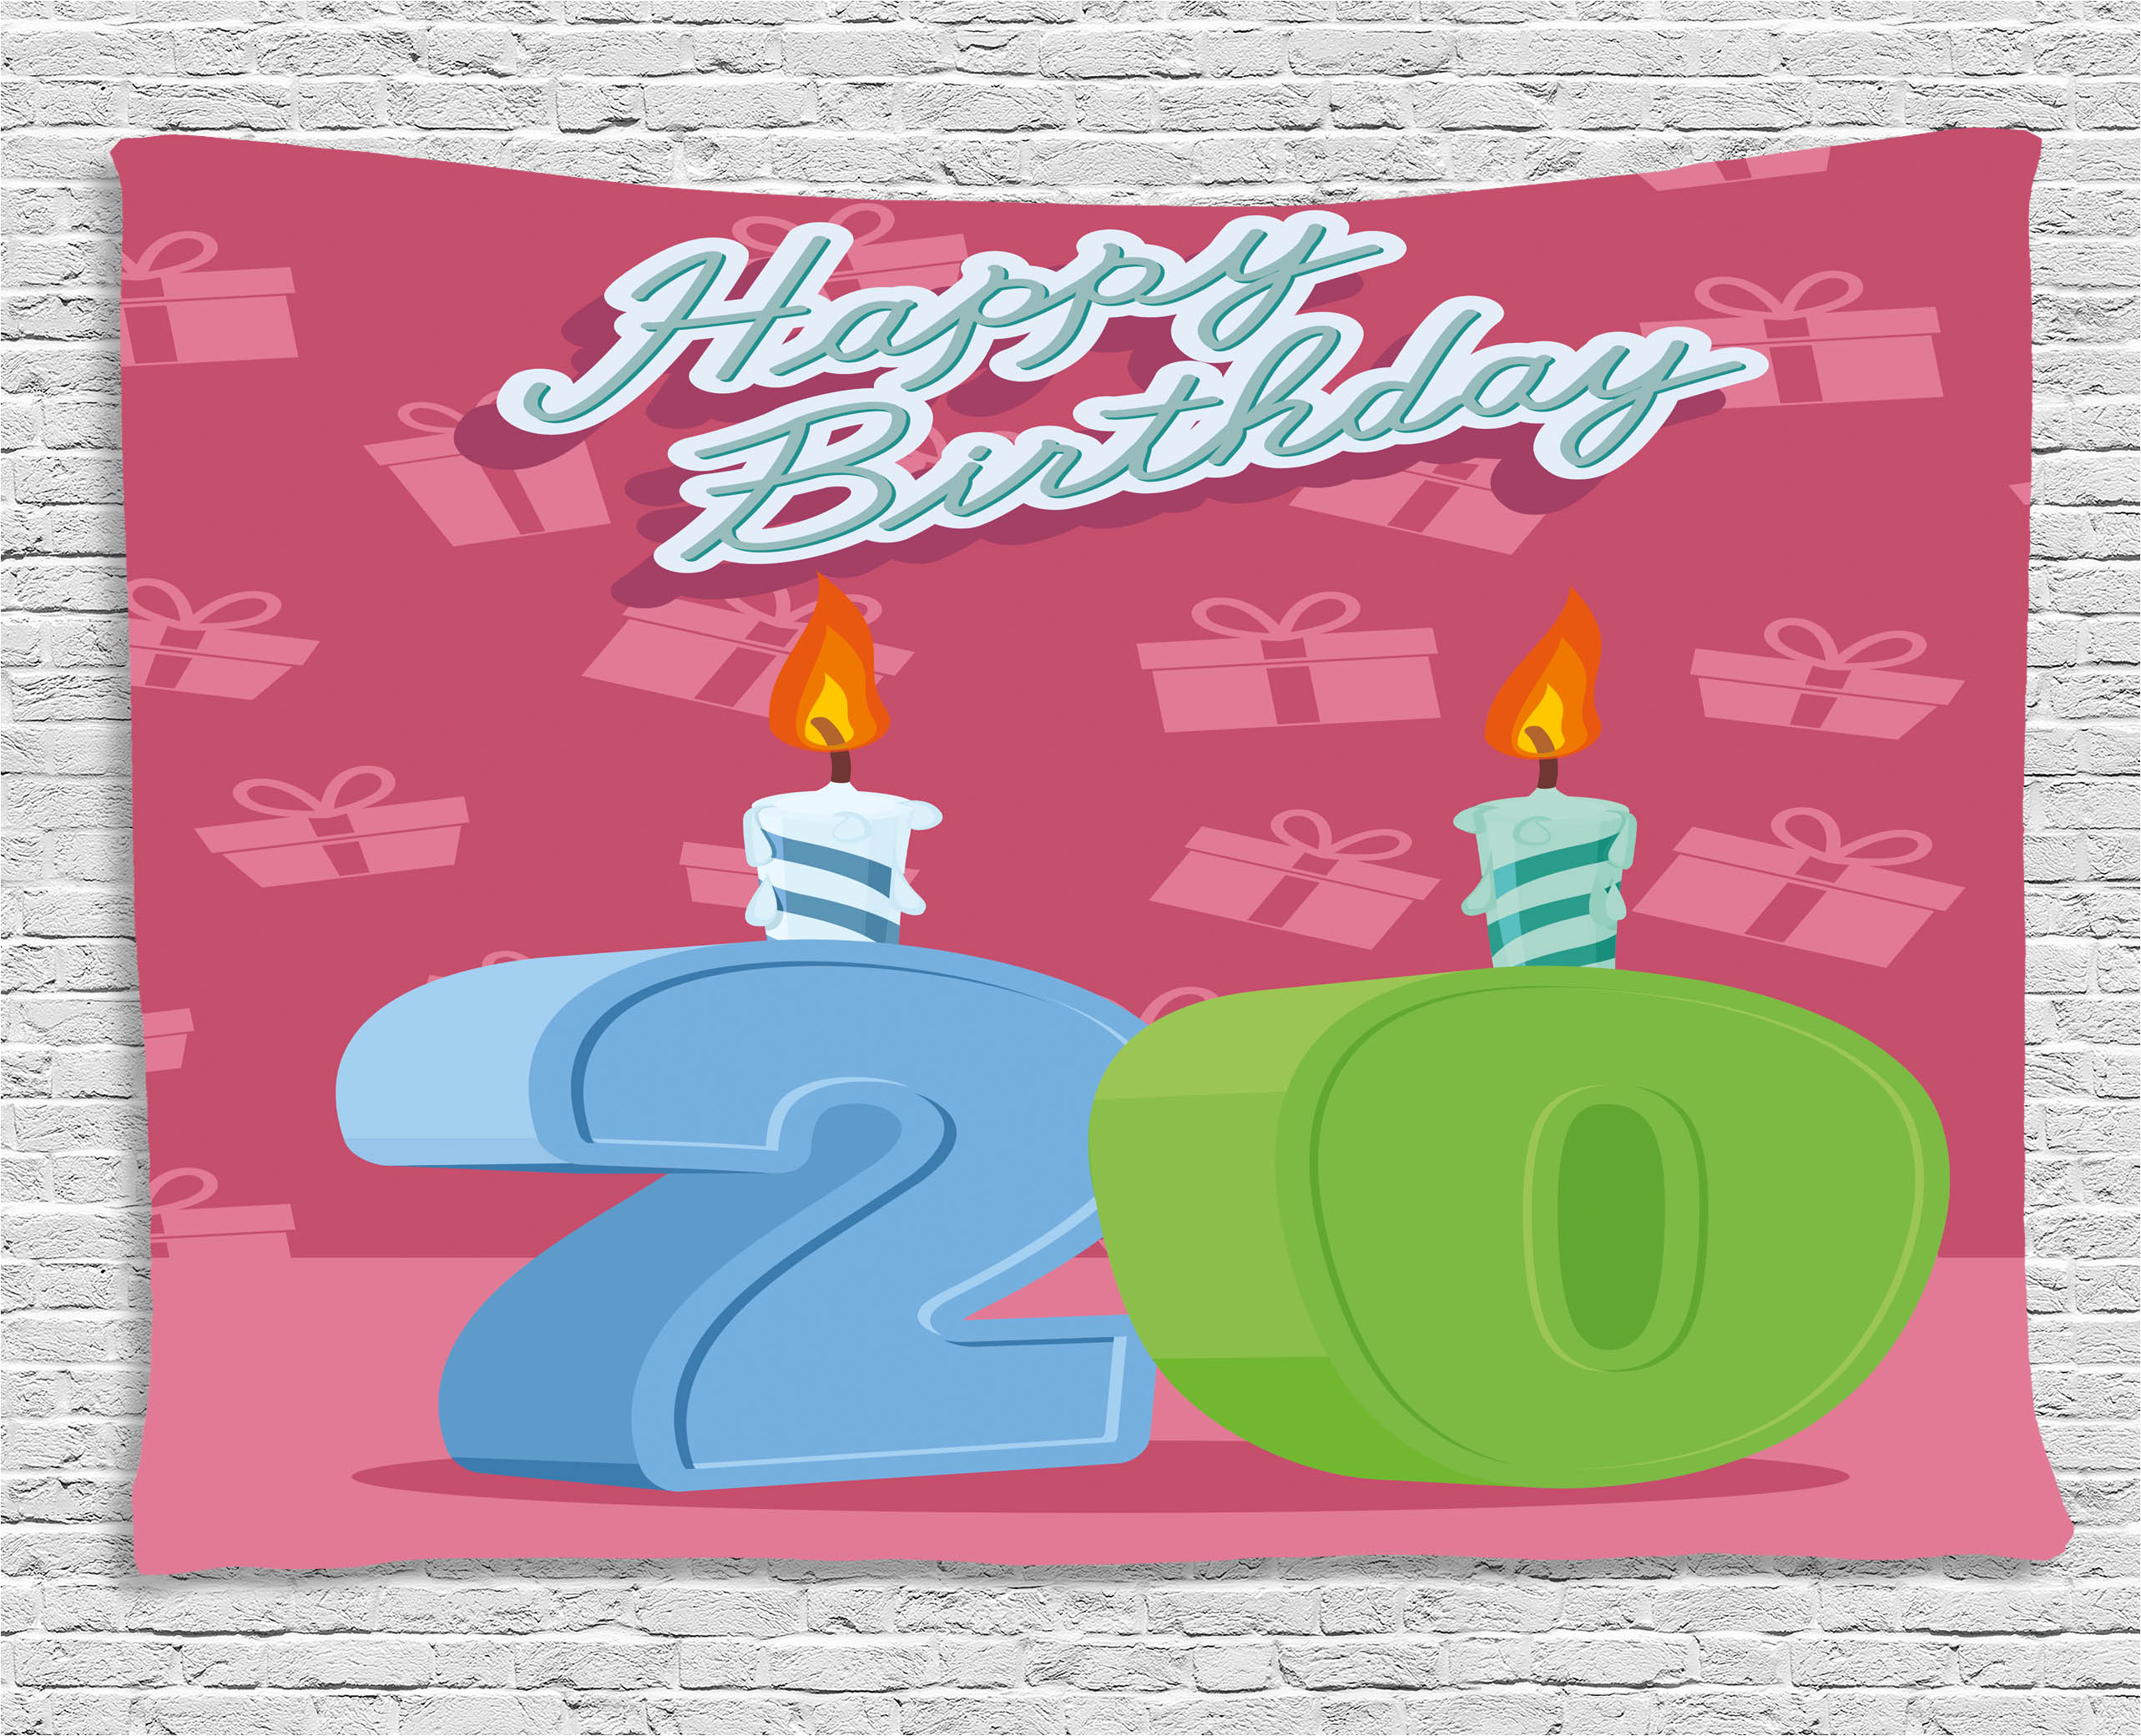 20th Birthday Decorations Tapestry Party Theme Lettering On Pink Backdrop Wall Hanging For Bedroom Living Room Dorm Decor 60W X 40L Inches